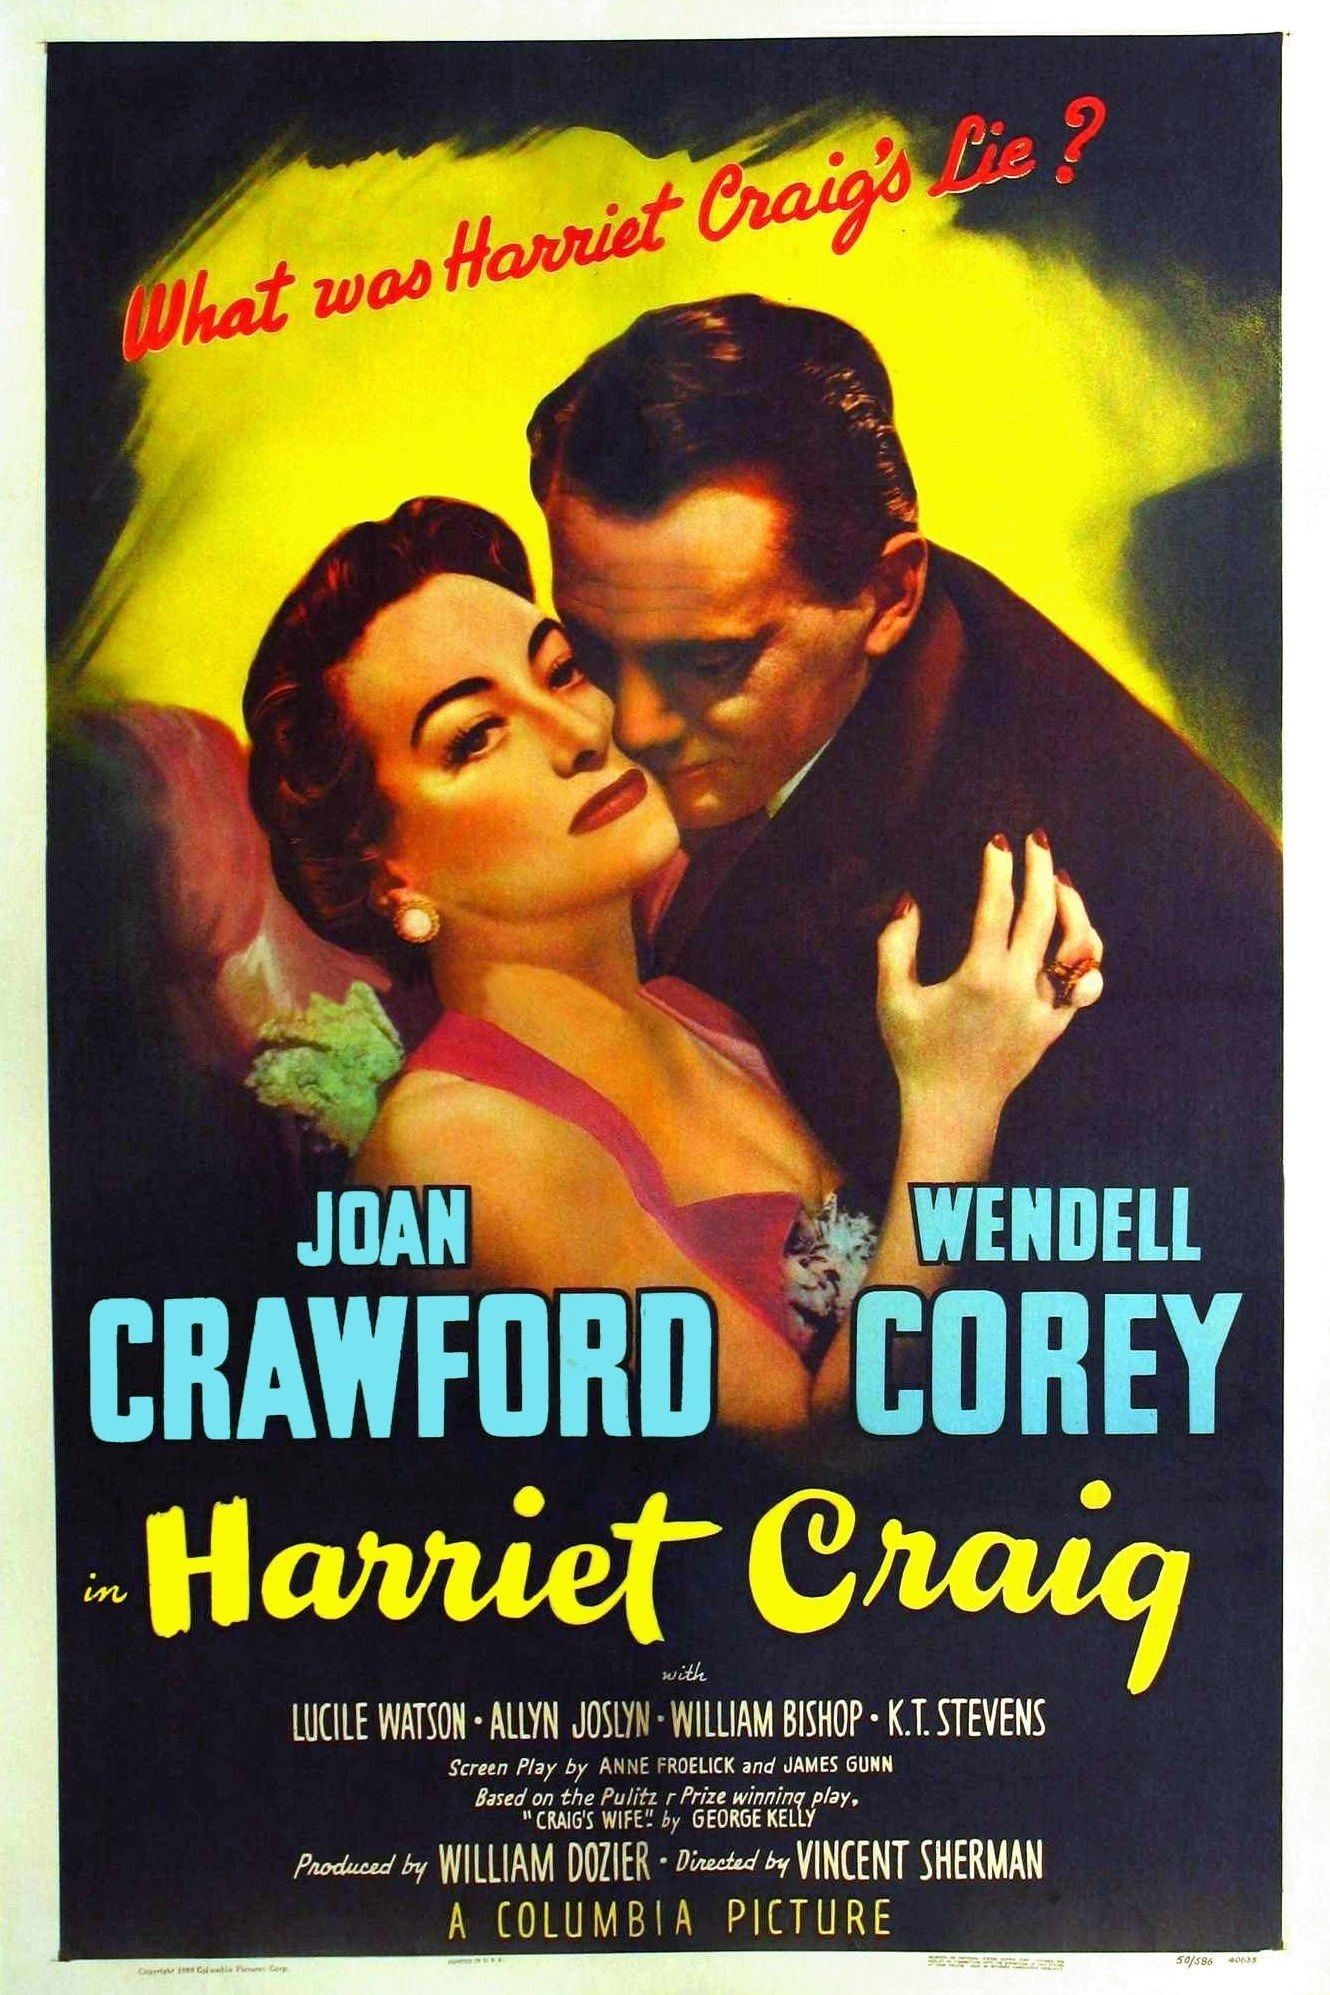 Harriet Craig is a 1950 American drama film starring Joan Crawford. The screenplay by Anne Froelick and James Gunn was based upon the 1925 Pulitzer Prize-winning play Craig's Wife, by George Kelly. The film was directed by Vincent Sherman, produced by William Dozier, and distributed by Columbia Pictures. Harriet Craig is the second of three cinematic collaborations between Sherman and Crawford, the others being The Damned Don't Cry! (1950) and Goodbye, My Fancy (1951).